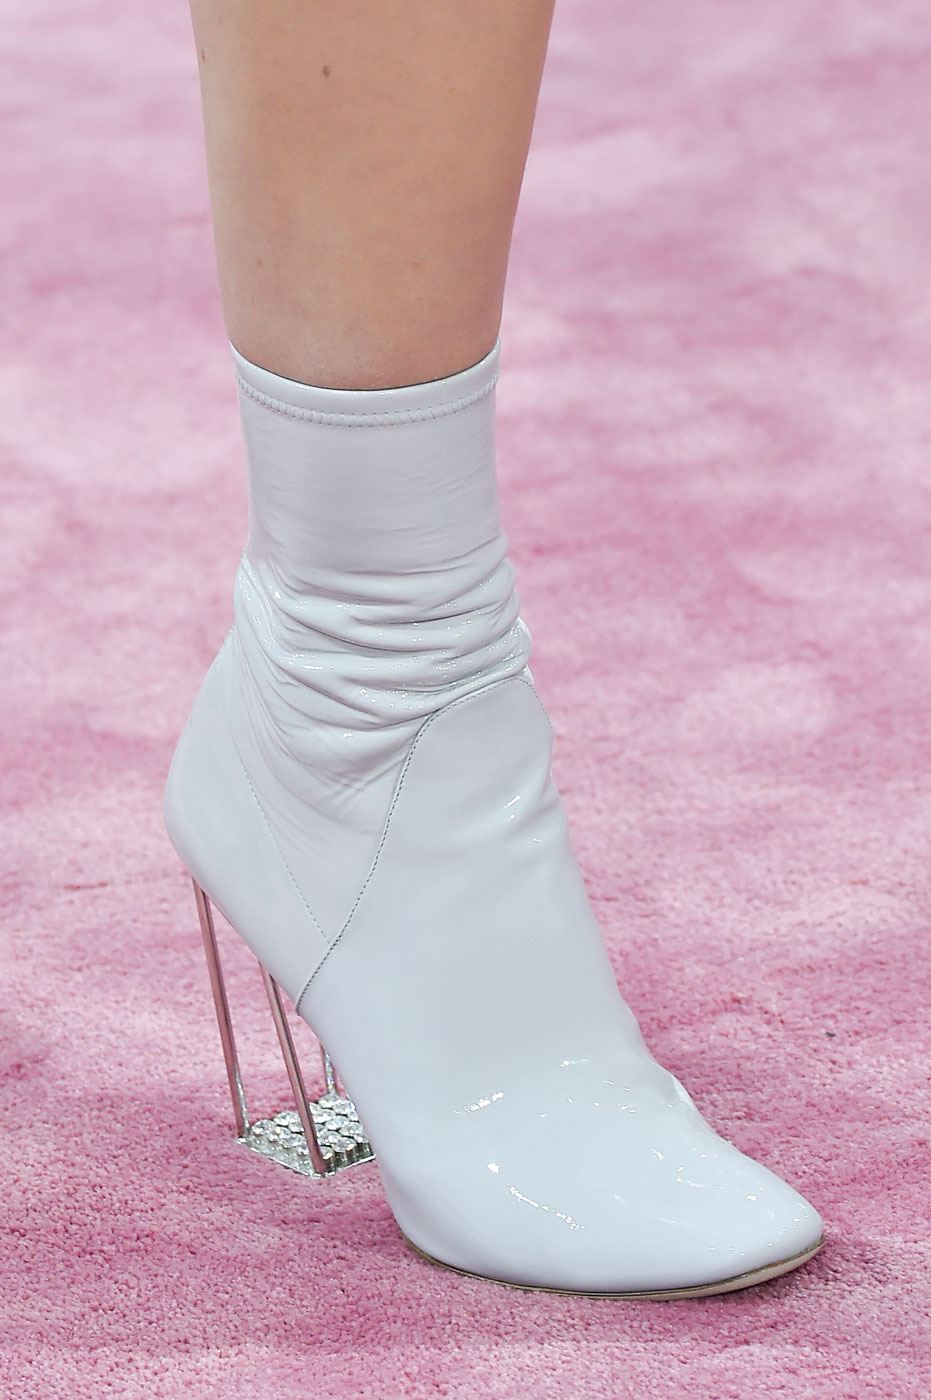 Christian-Dior-fashion-runway-show-close-ups-haute-couture-paris-spring-summer-2015-the-impression-082